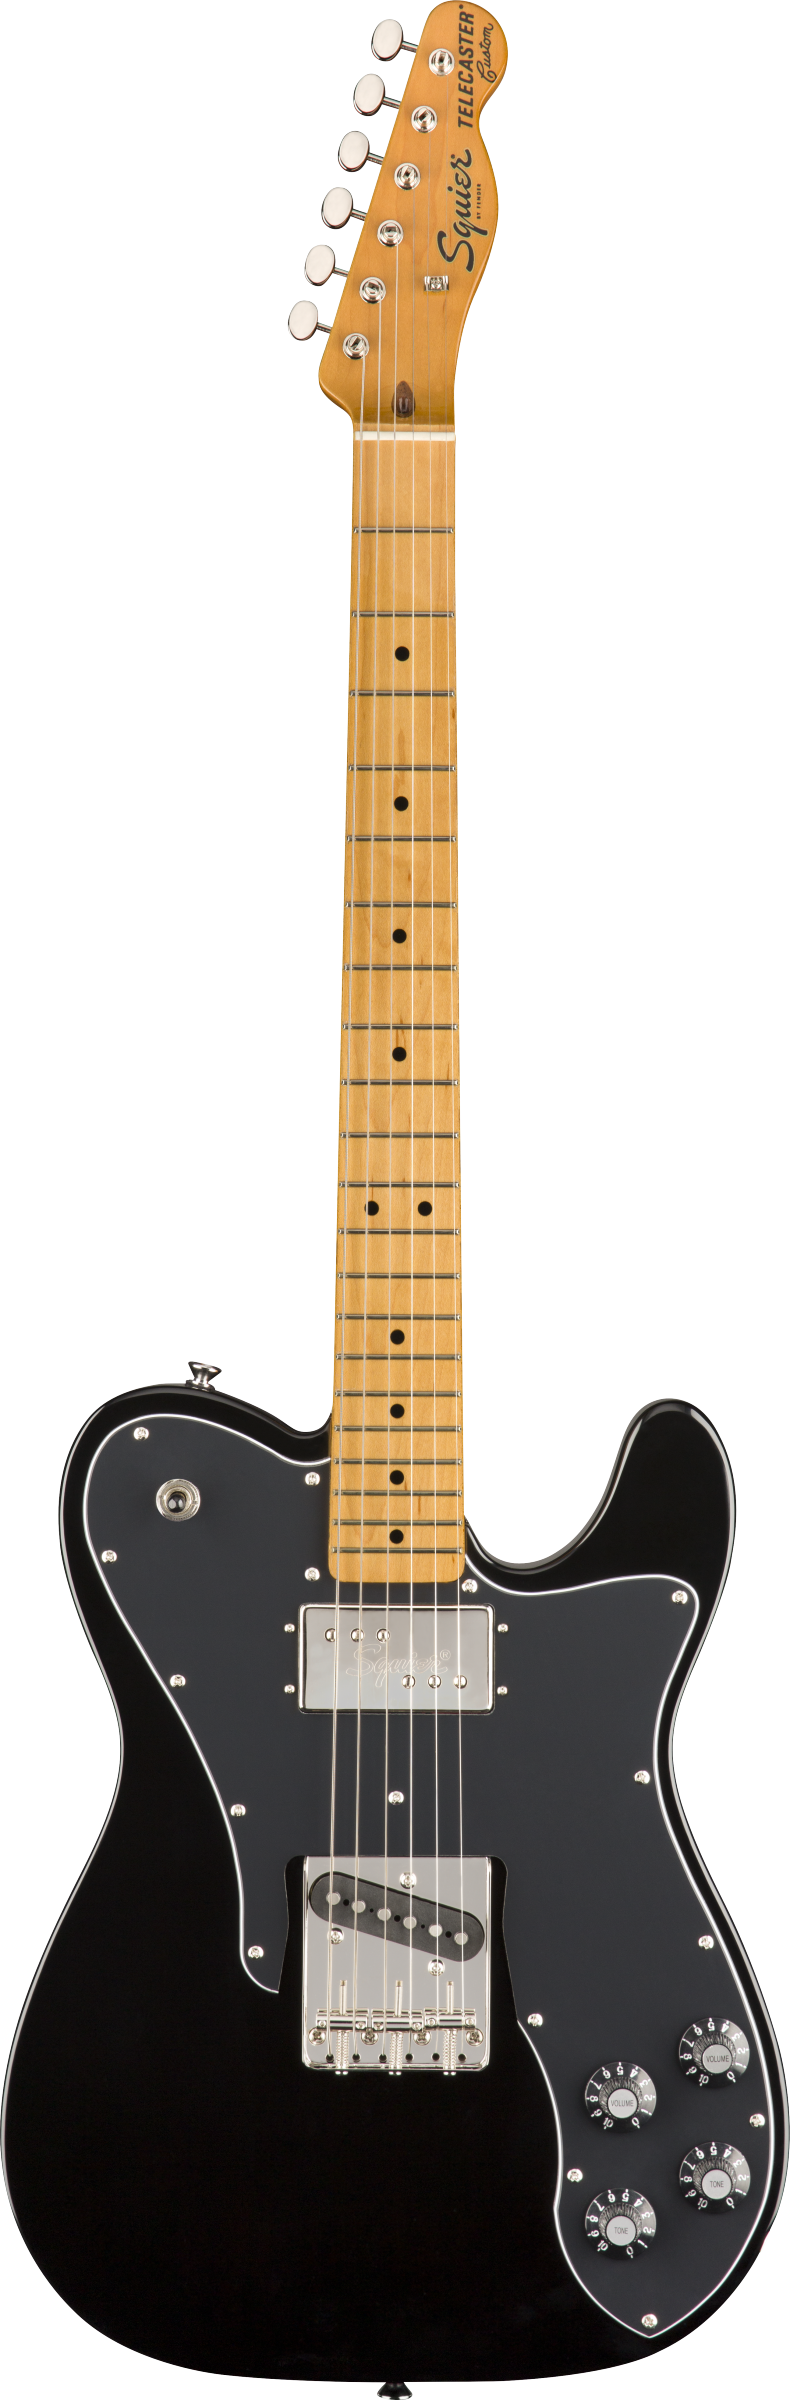 Squier Classic Vibe 70s Telecaster Custom Black - Regent Sounds